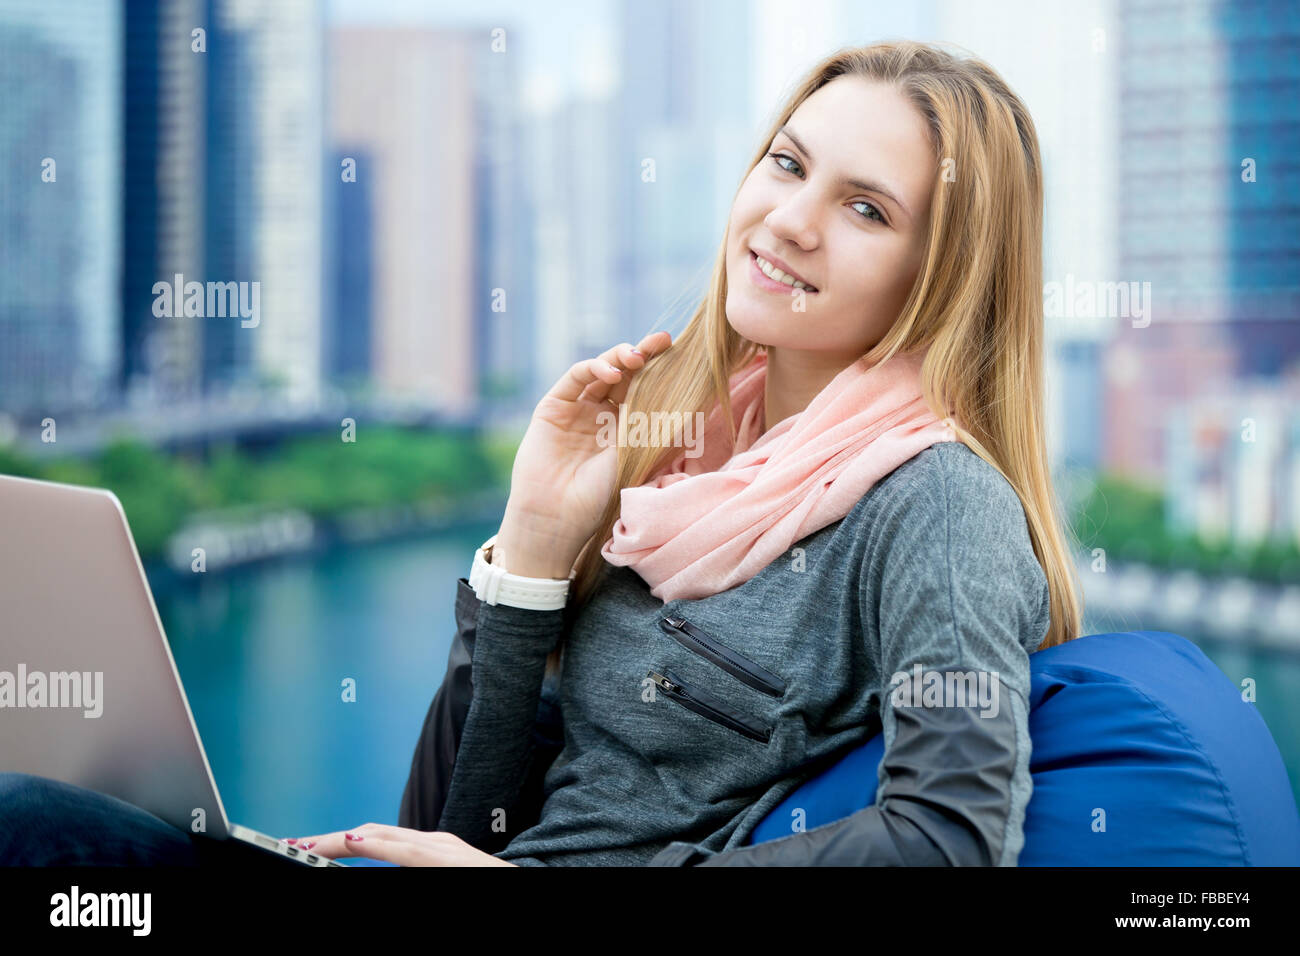 Happy smiling girl sitting in comfortable bean bag chair with her portable computer, big city on the background - Stock Image